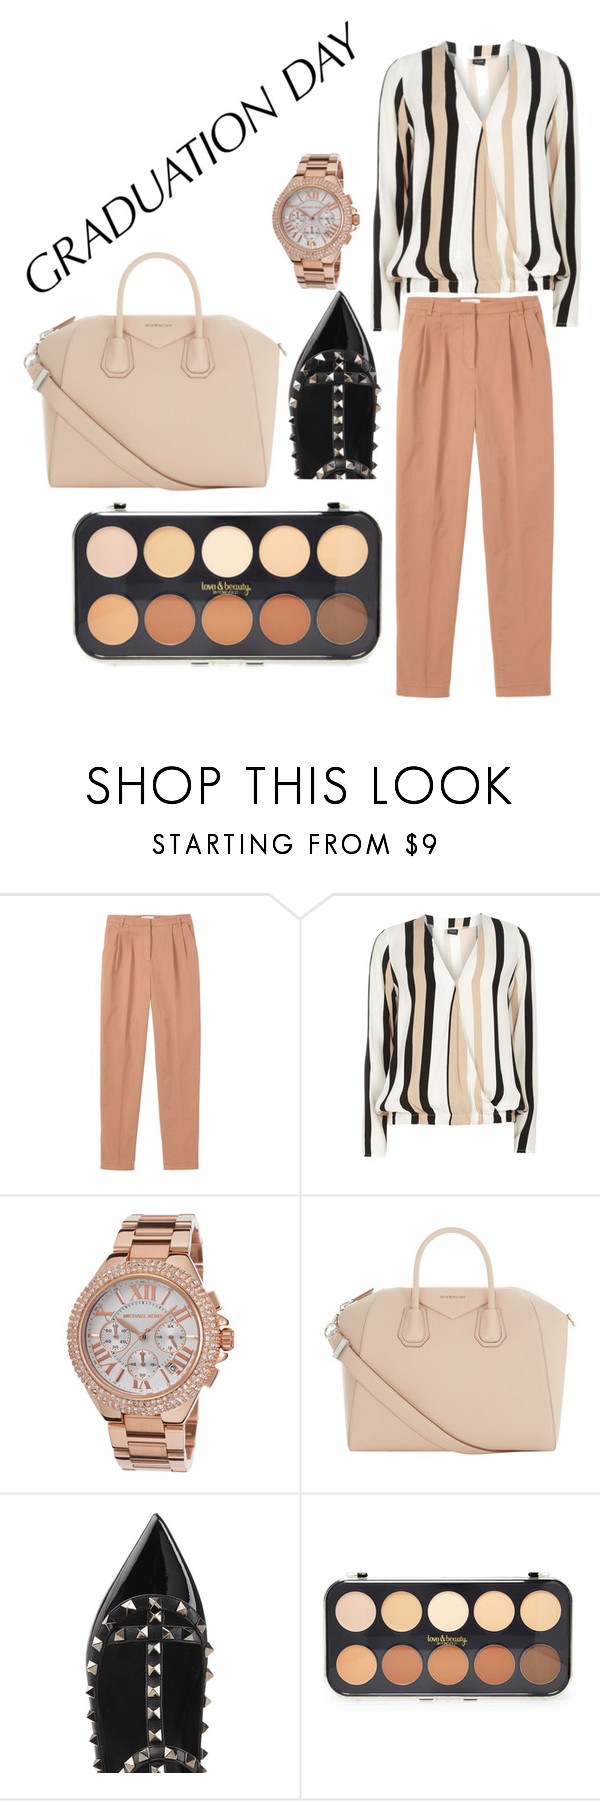 """""""Untitled #1"""" by roxana-cristina-1 ❤ liked on Polyvore featuring Toast, Dorothy Perkins, Michael Kors, Givenchy, Valentino, Forever 21 and graduationdaydress"""